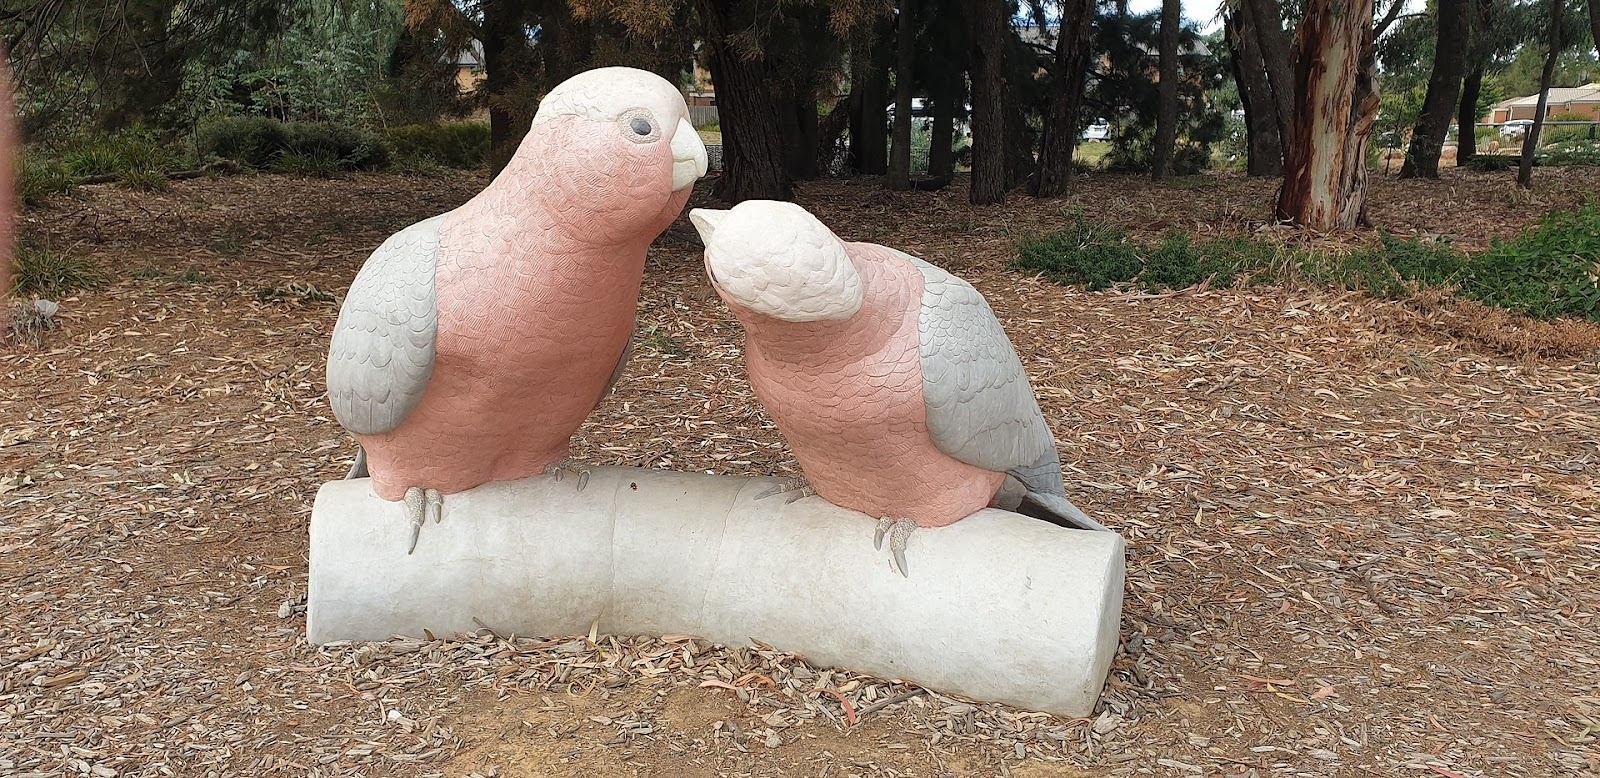 The story of Big Galahs in Watson will warm your heart. Read on to find out more.